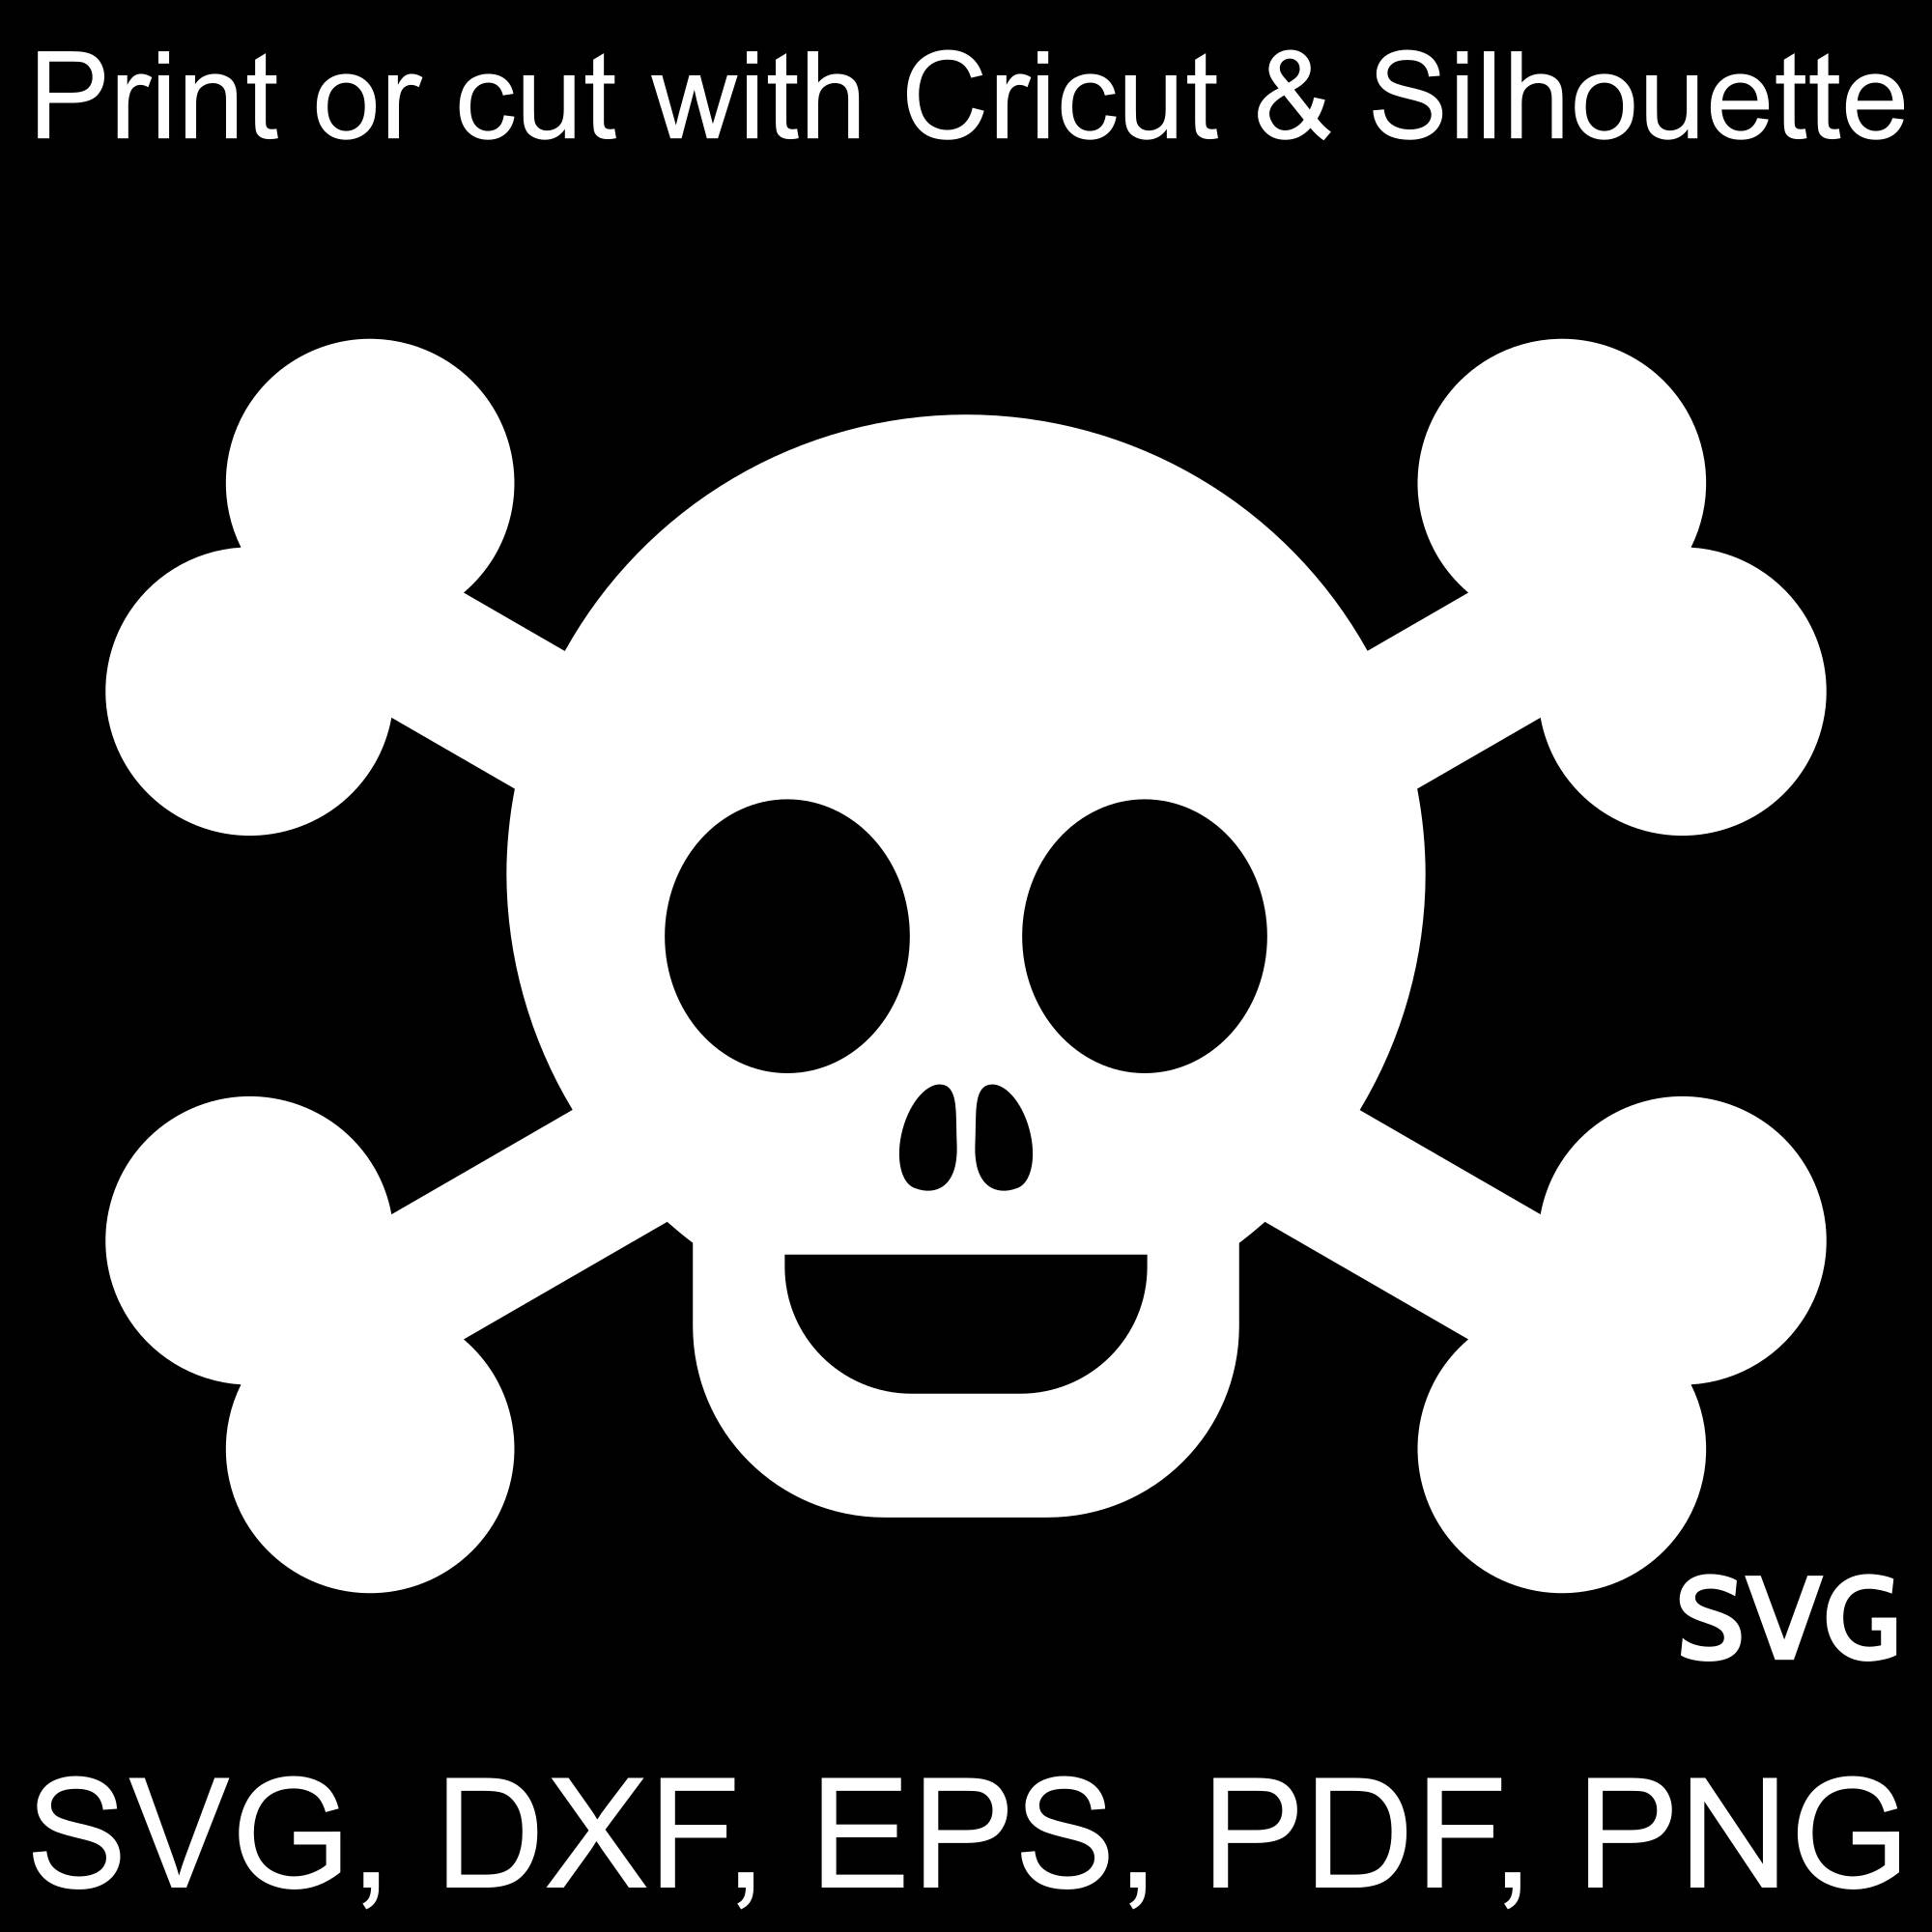 Happy Pirate Flag SVG file, Skull and Bones clipart printable and cut file  to make Pirate gifts and invitations for Pirate Birthday parties